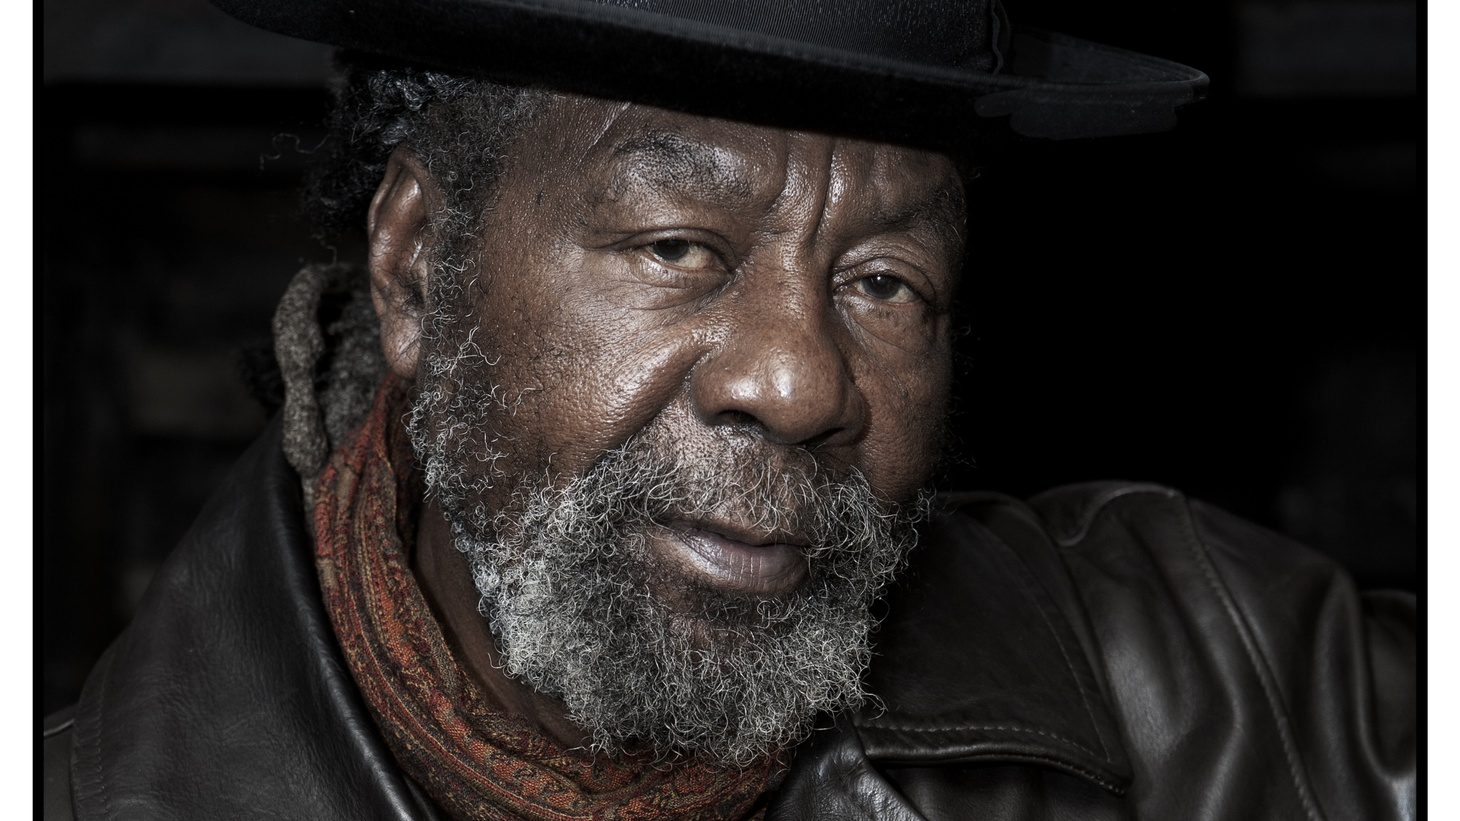 A final full-length recording by the late iconic originator of chatty rhythmic toasting style U-Roy will see daylight in mid-July, featuring guest appearances by top notch talent like Ziggy Marley, Mick Jones of The Clash, David Hinds of Steel…